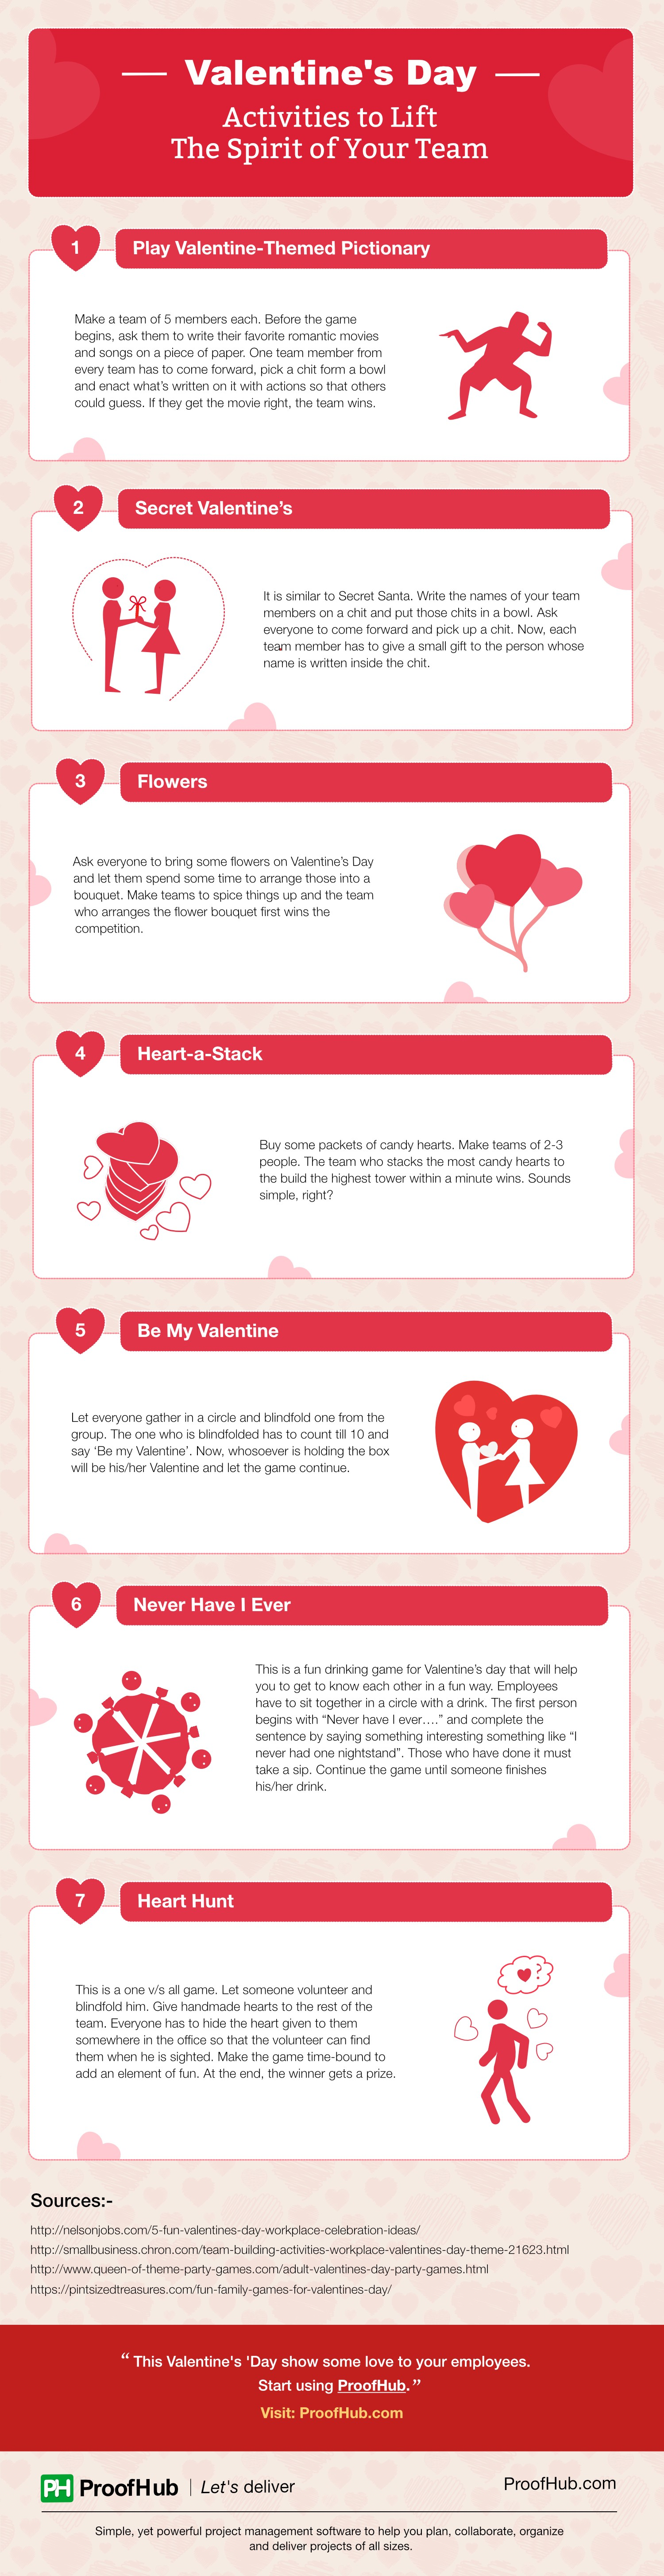 Fun Team Building Activities for Valentine's Day - ProofHub Blog